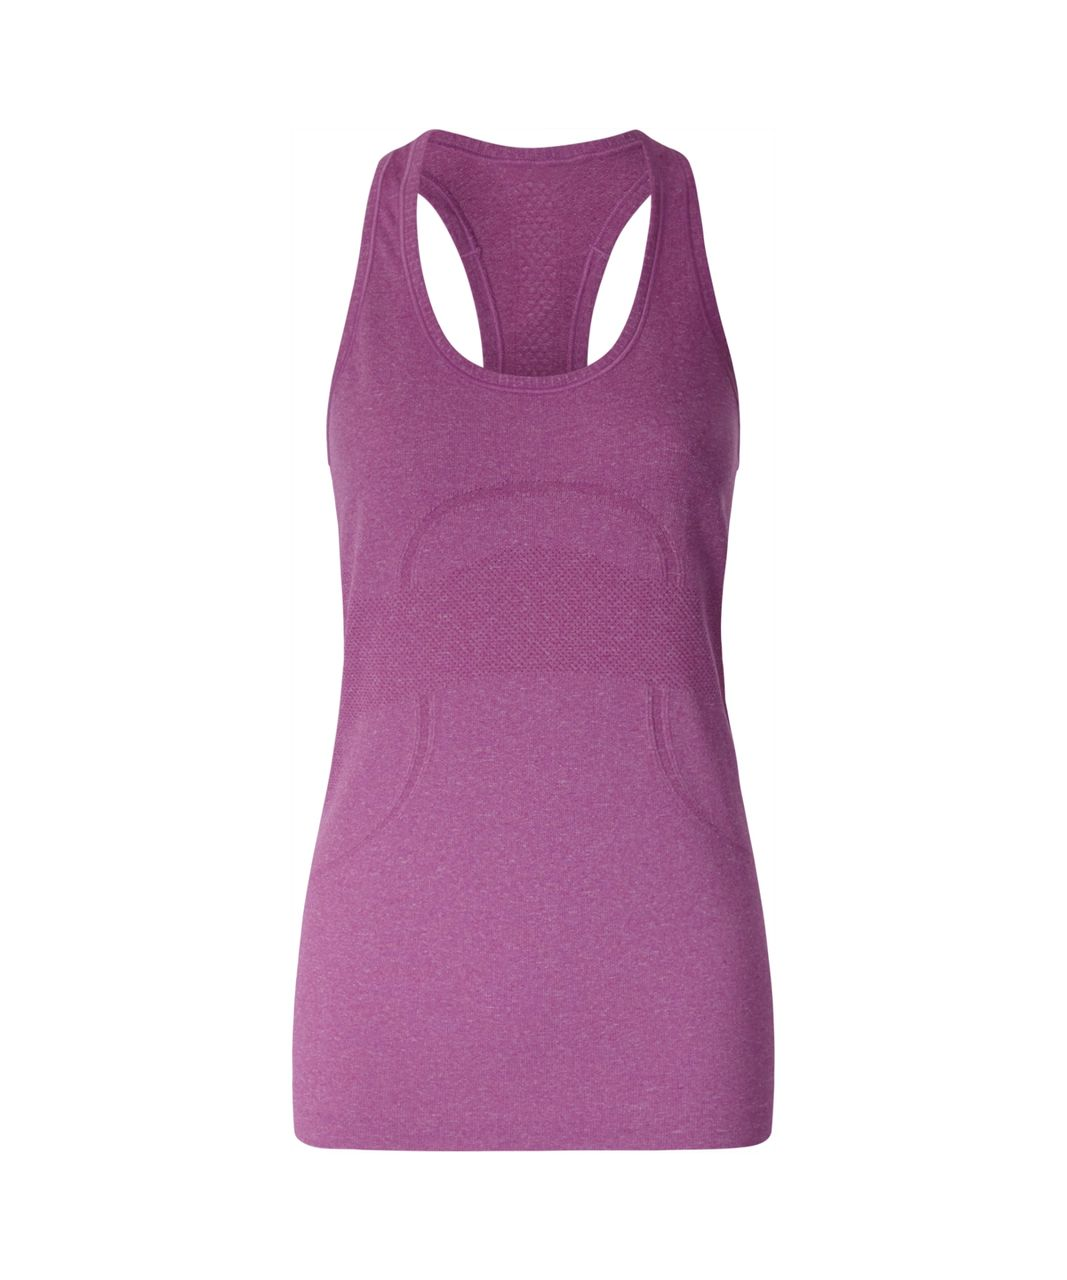 Lululemon Swiftly Tech Racerback - Heathered Regal Plum